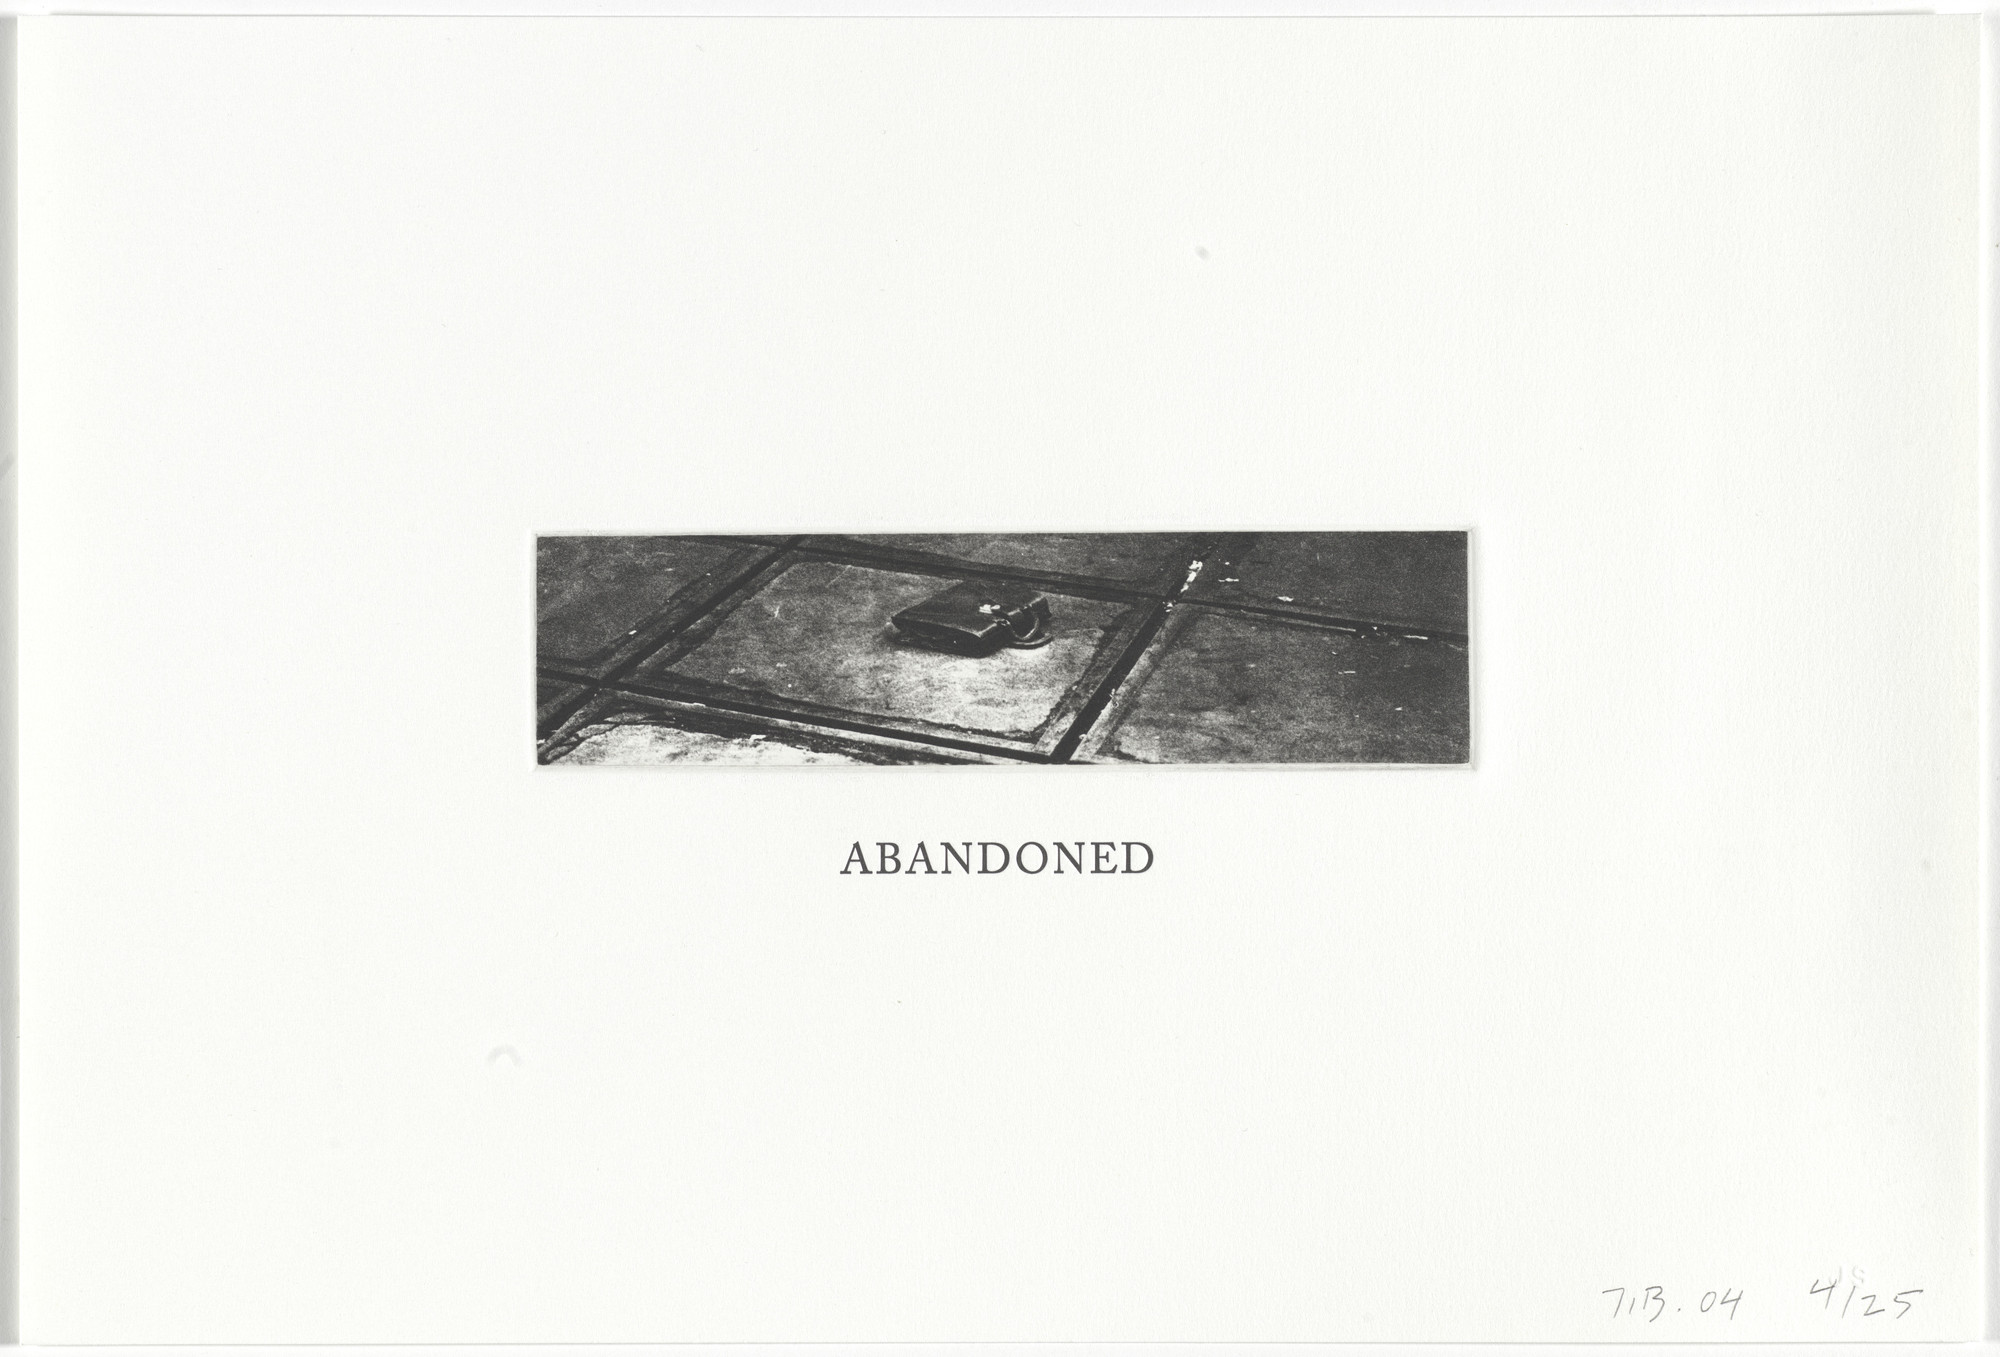 John Baldessari. Abandoned from Some Narrow Views: (Either Tall or Wide). 2004